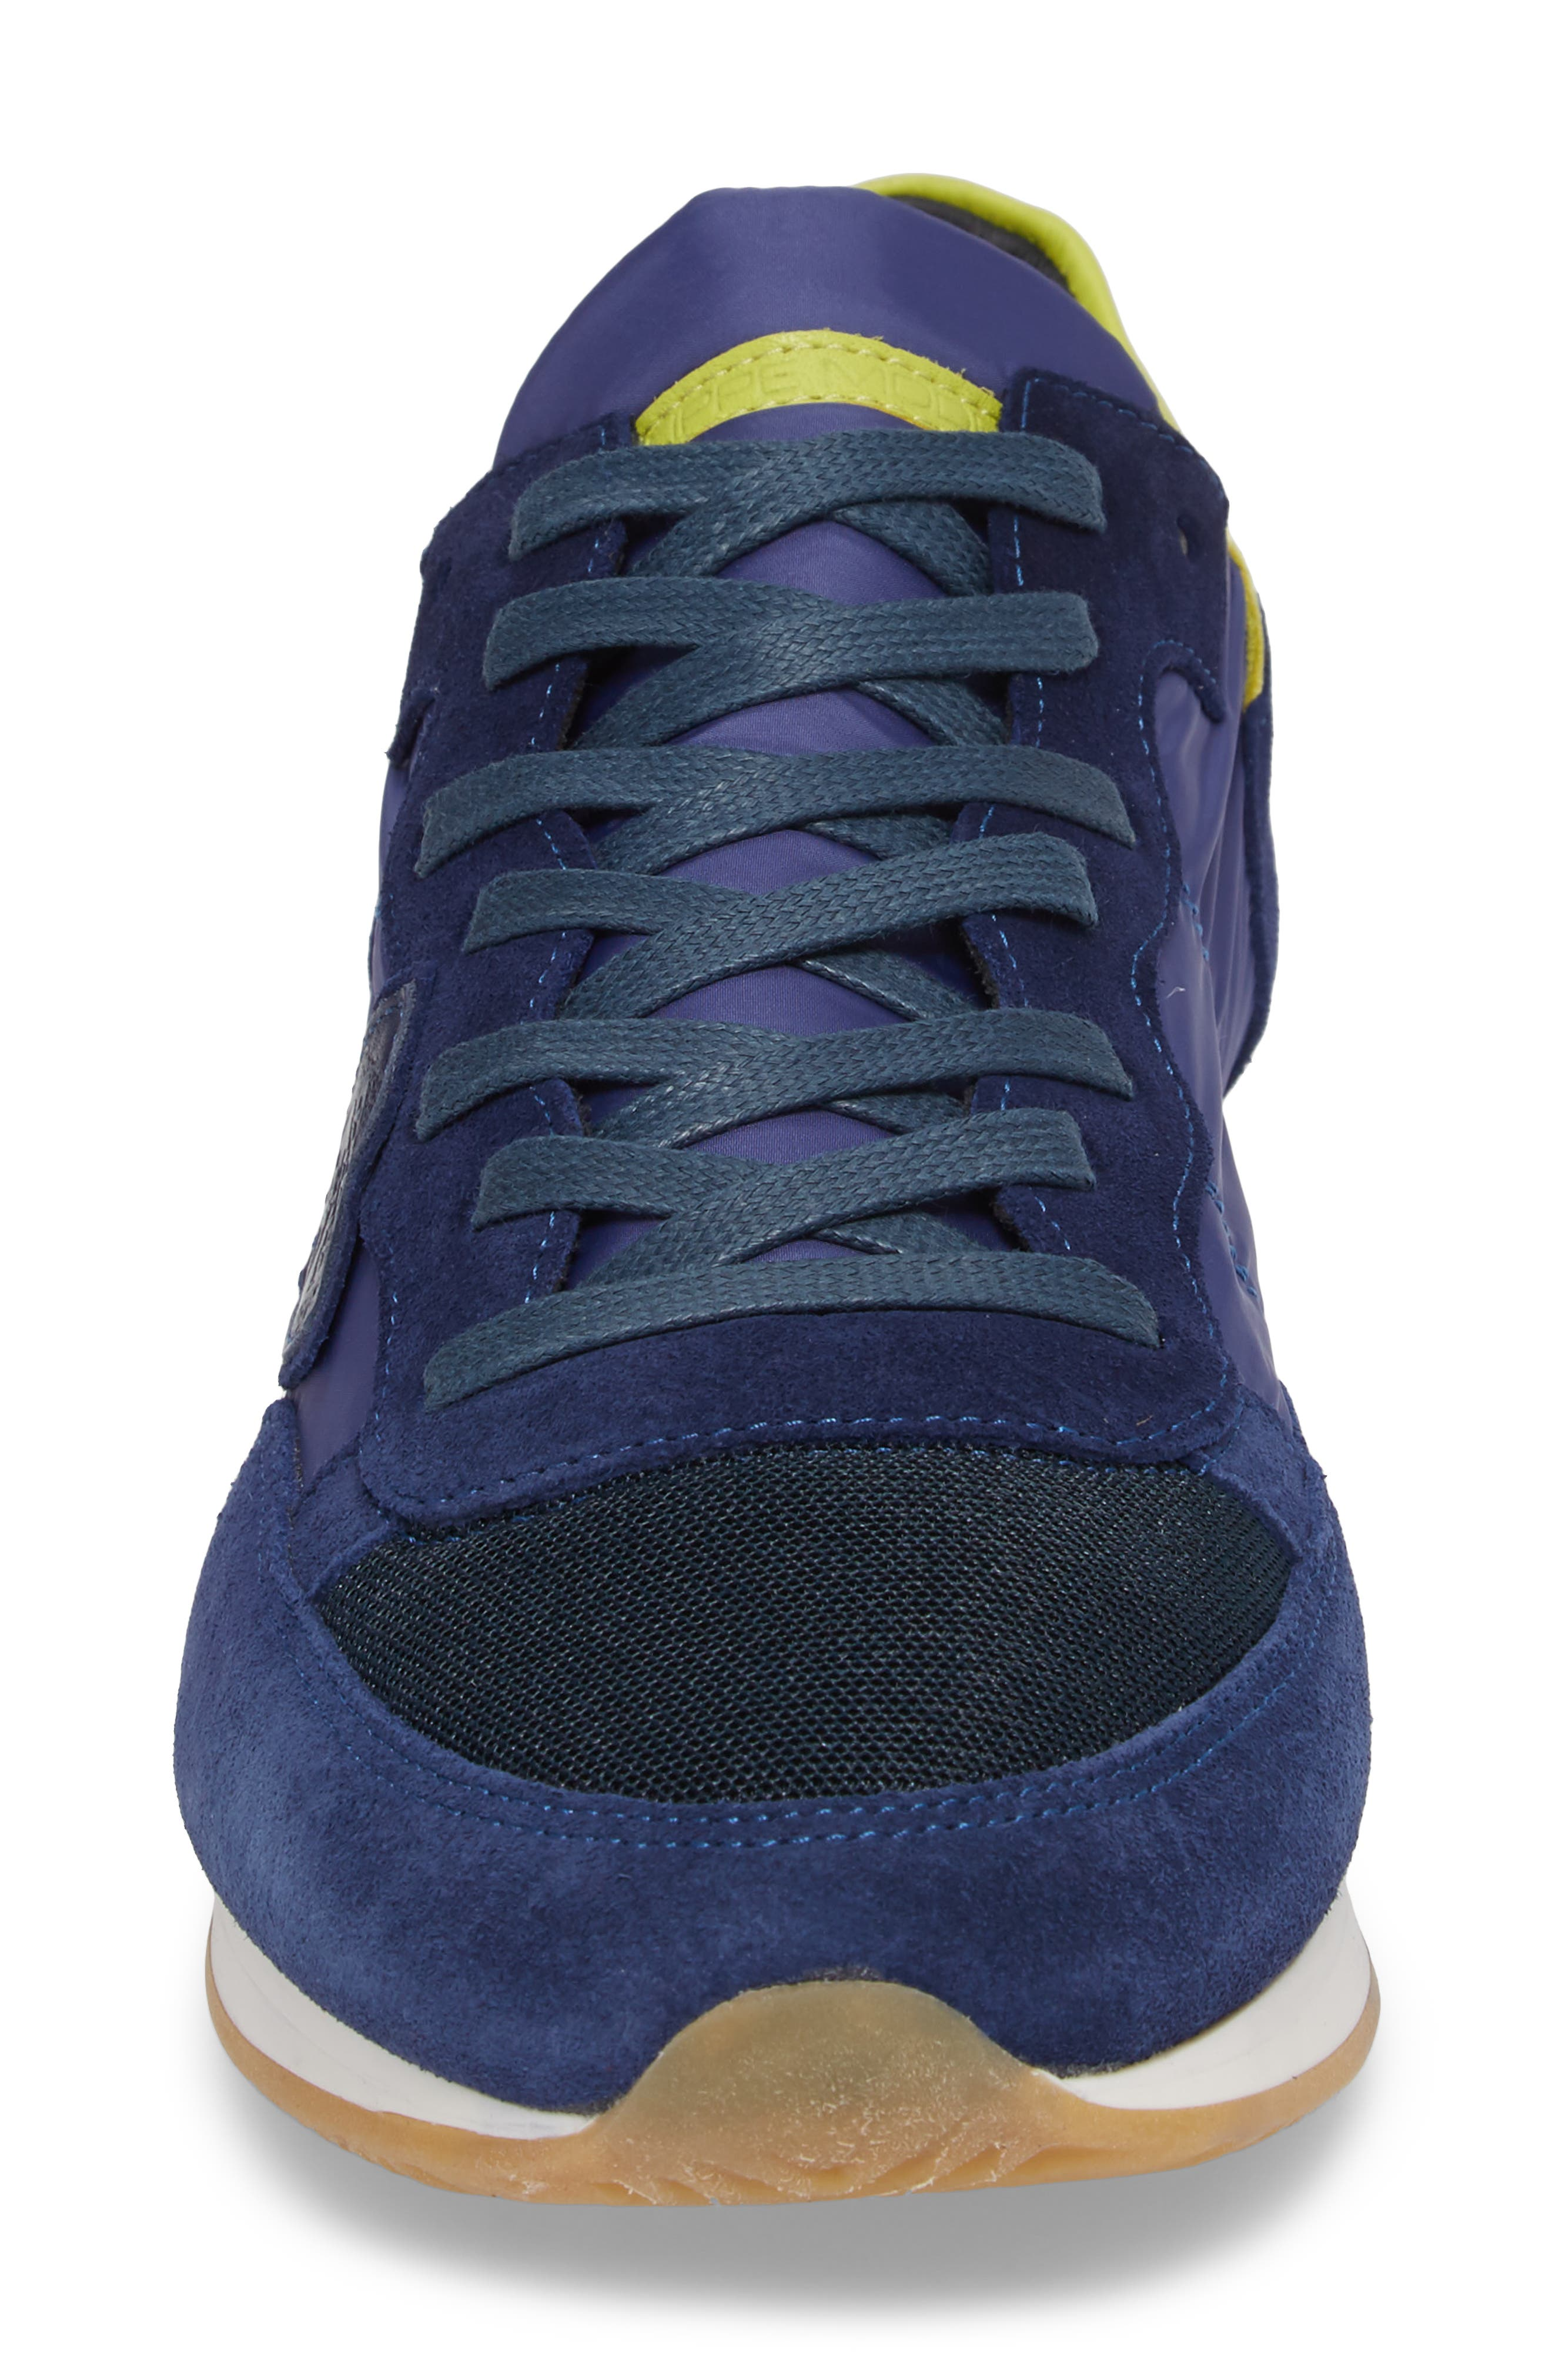 Tropez Low Top Sneaker,                             Alternate thumbnail 4, color,                             430